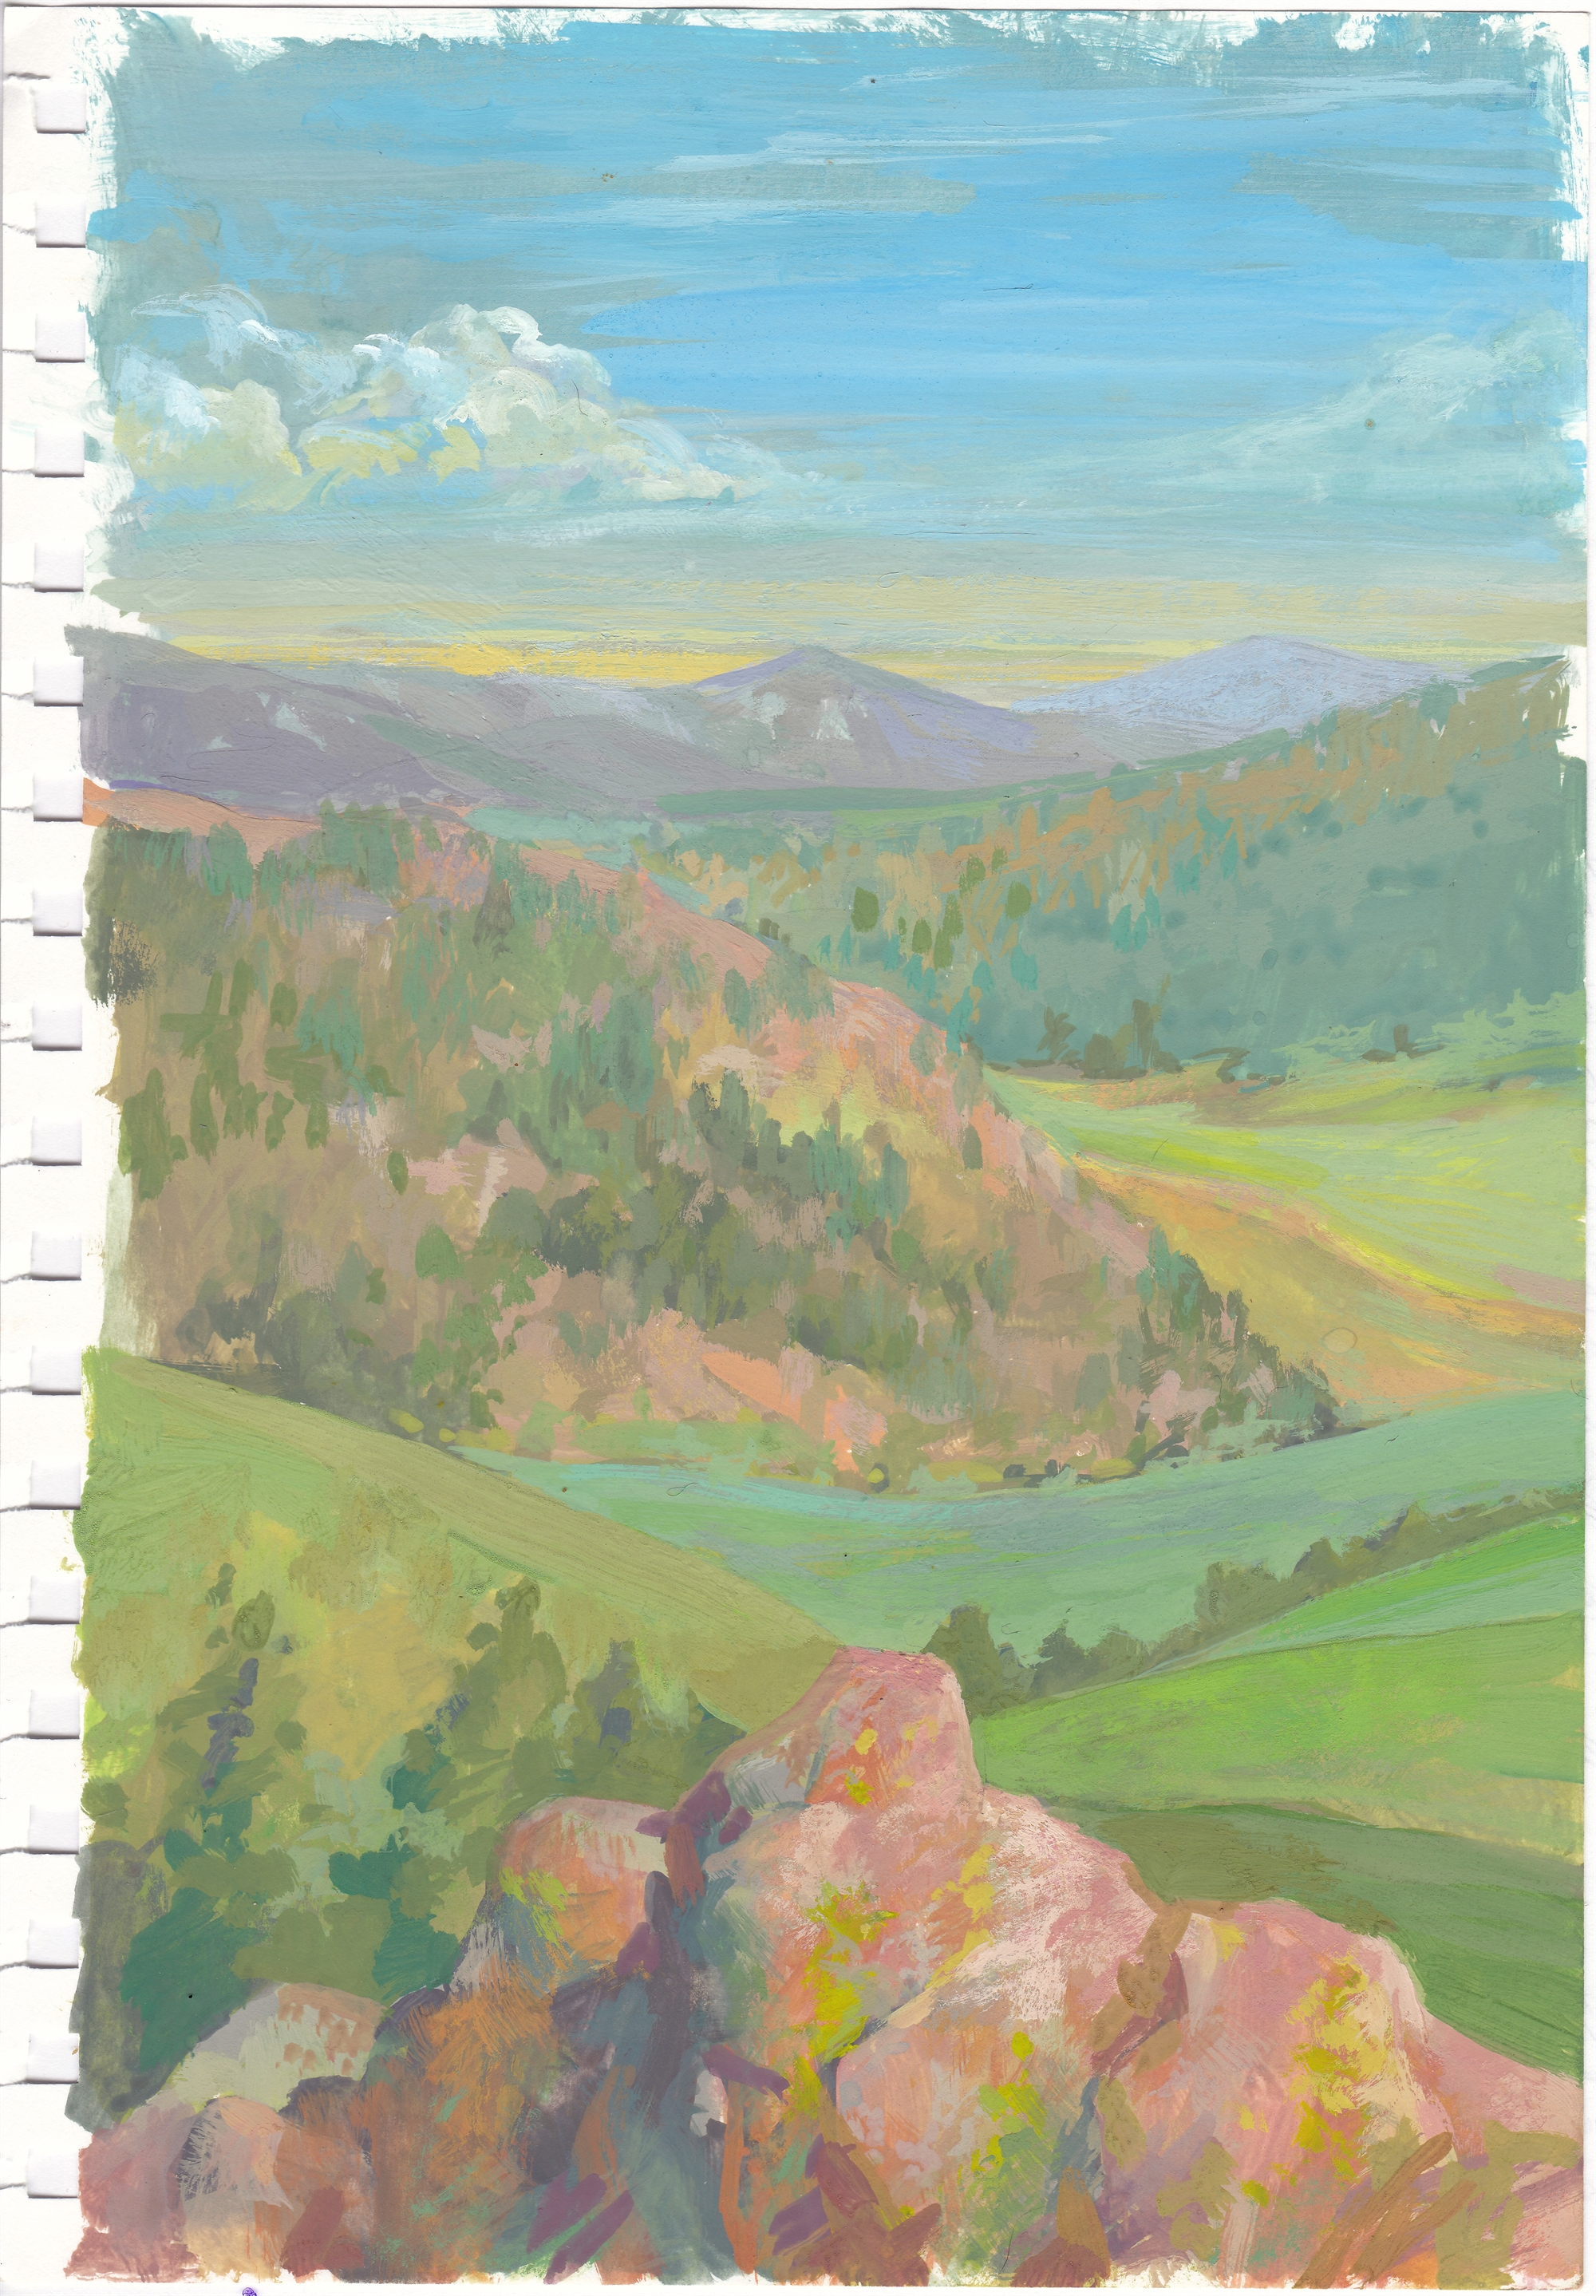 Study: Pink Boulder And The Valley by Charis Carmichael Braun